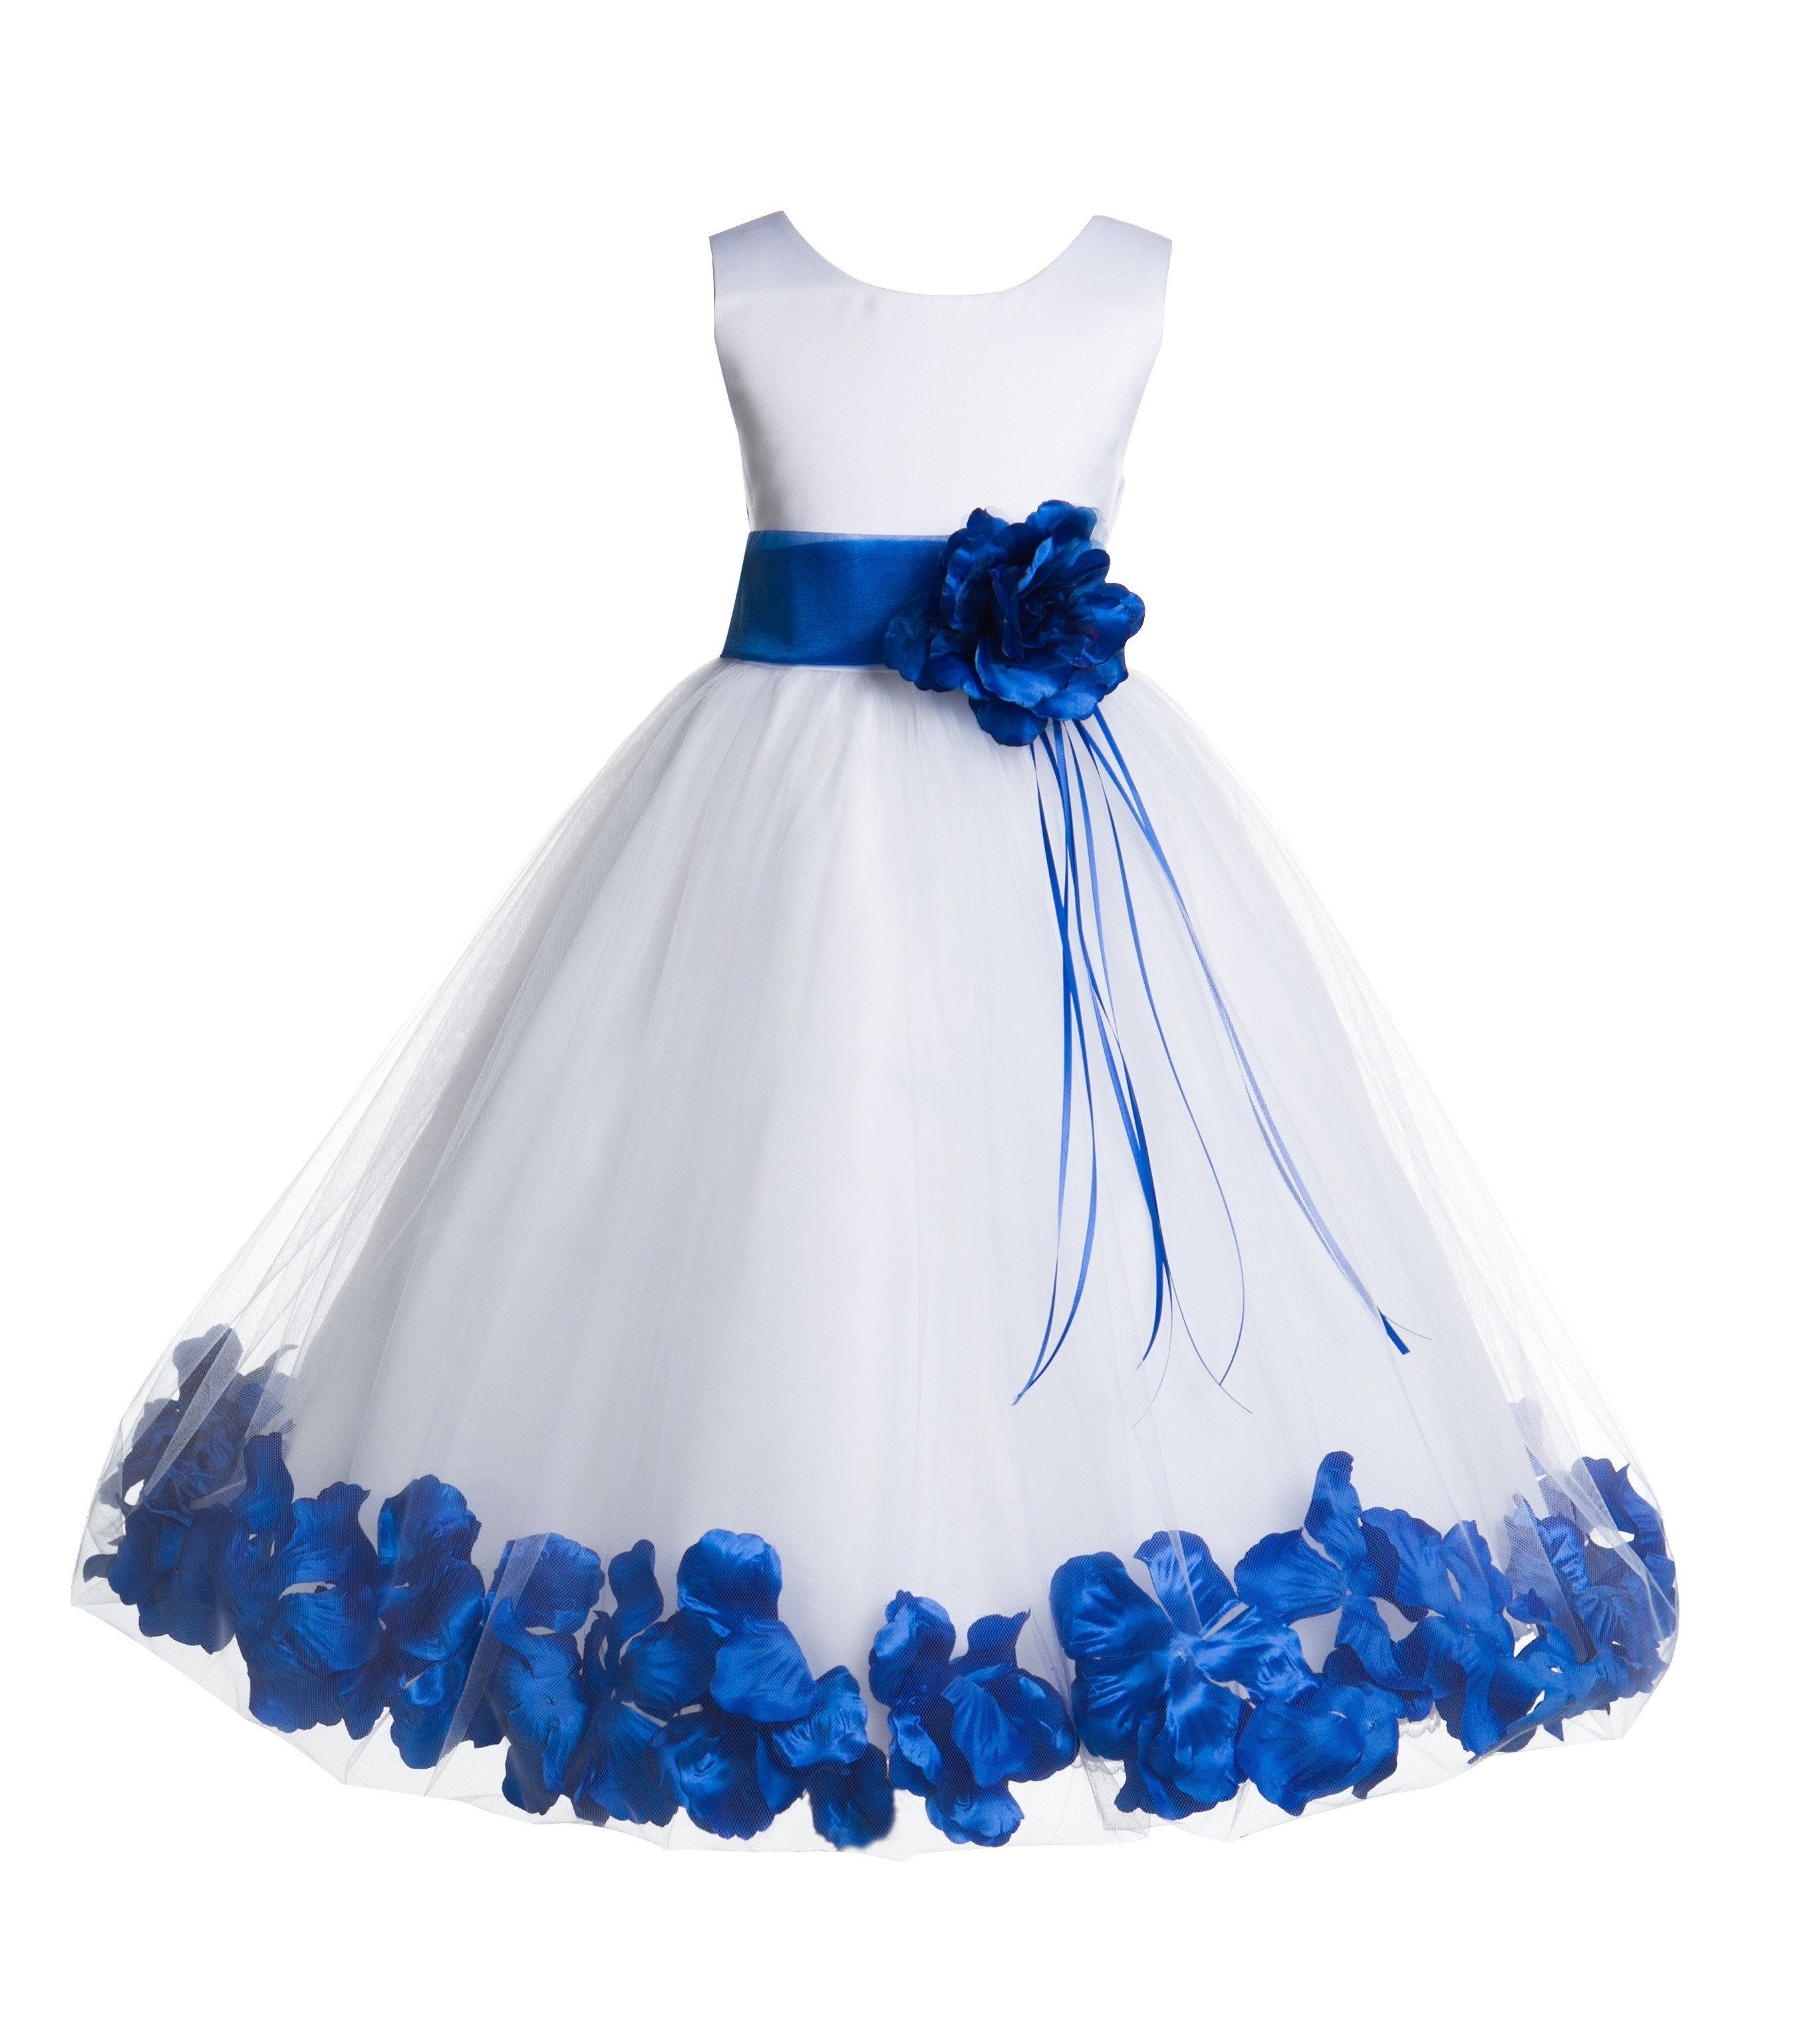 Flower Girls Princess Dresses Bridesmaid Pageant Recital Wedding Gown Birthday